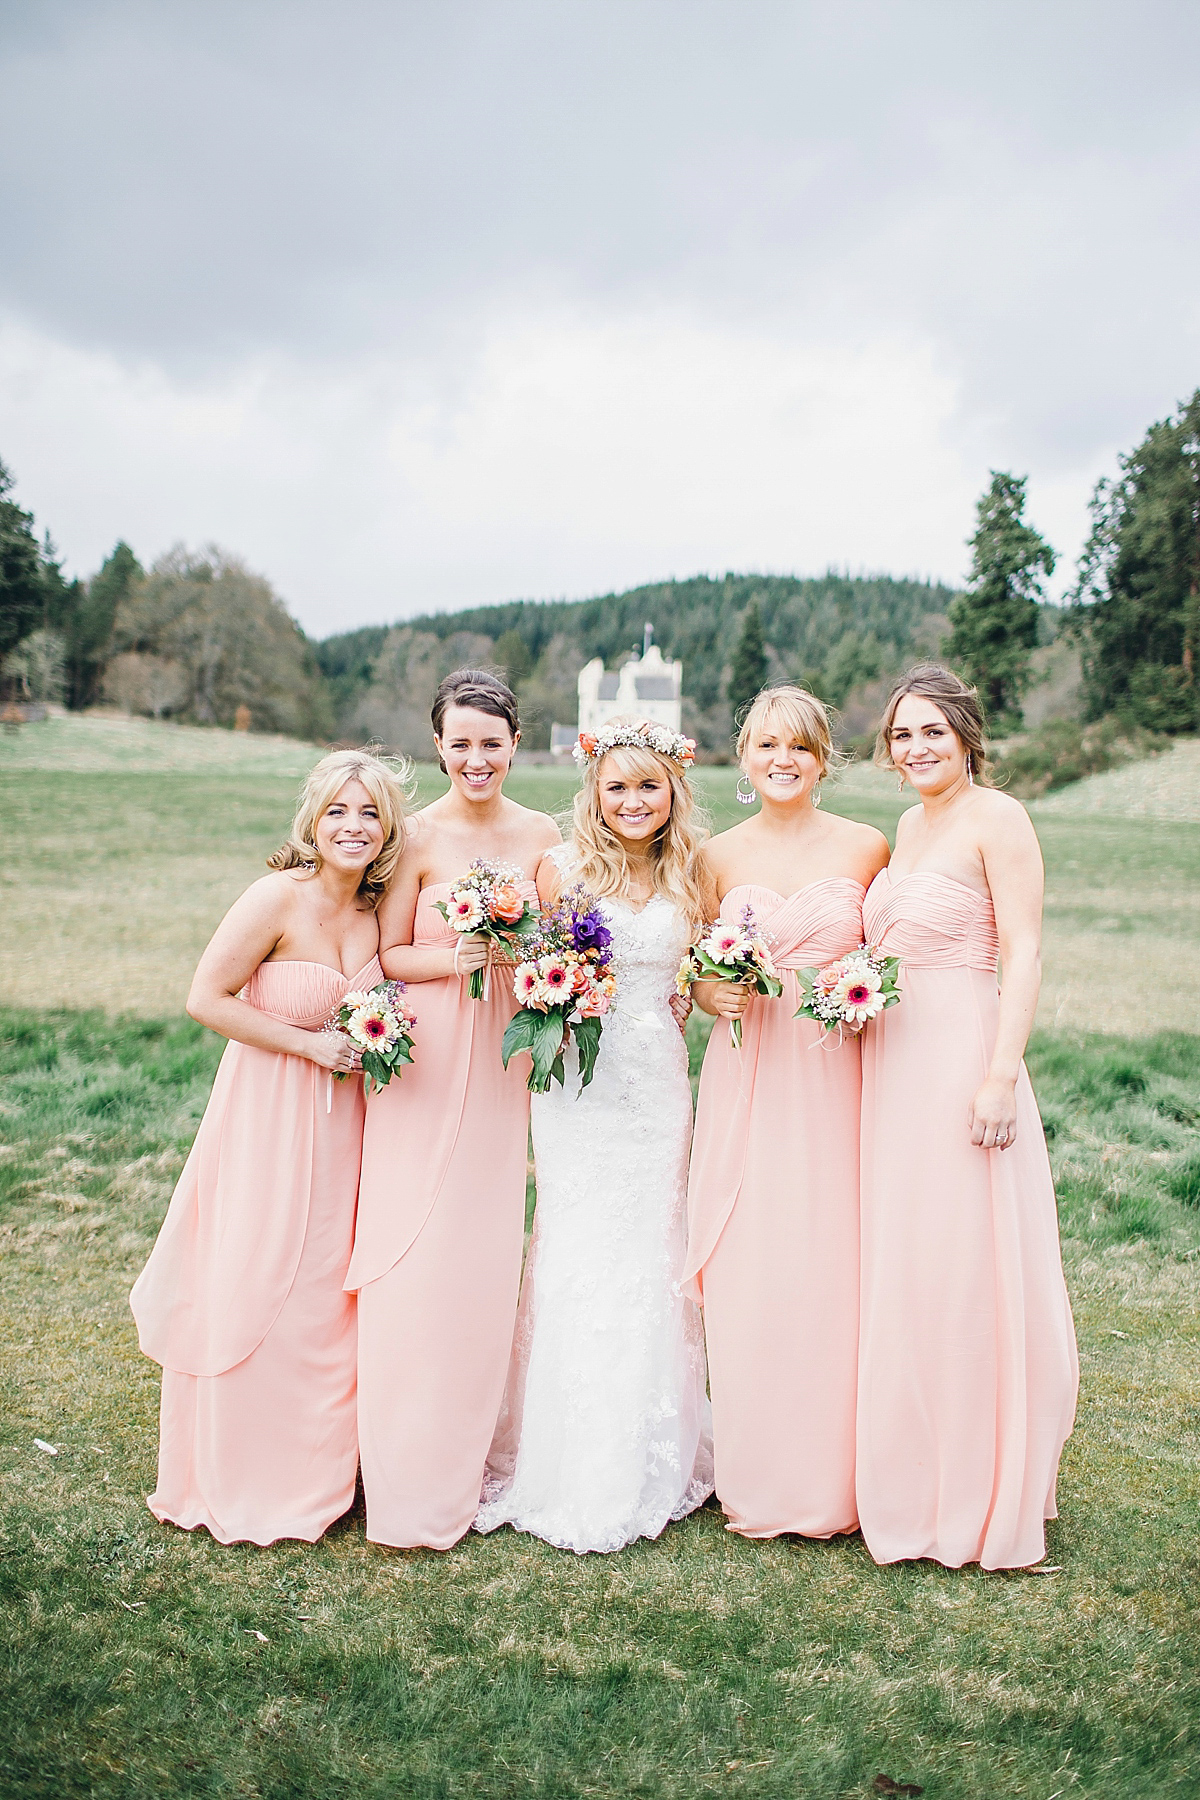 A Peach Toned Flower Crown and Essense of Australia Gown